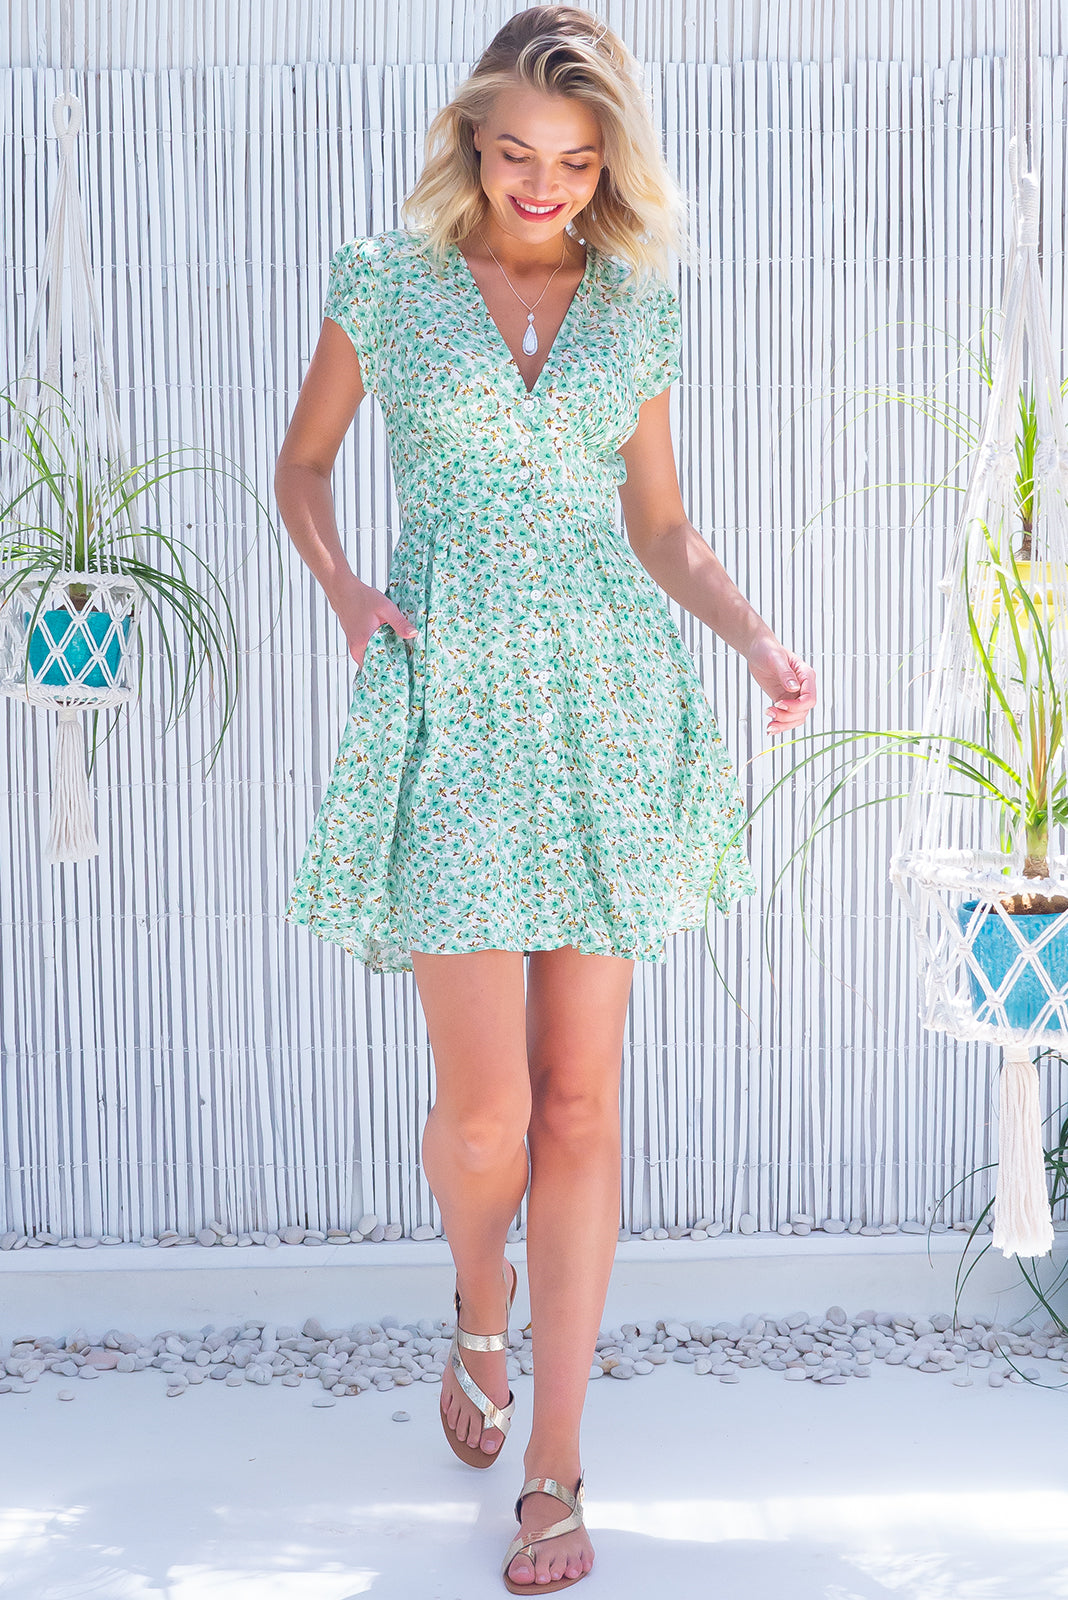 The Peggy Mint Daisy Dress features functional button front, cap sleeves, softly fitted basque waist, shirring across the back waist, side pockets and 100% viscose in white base with mint floral print.